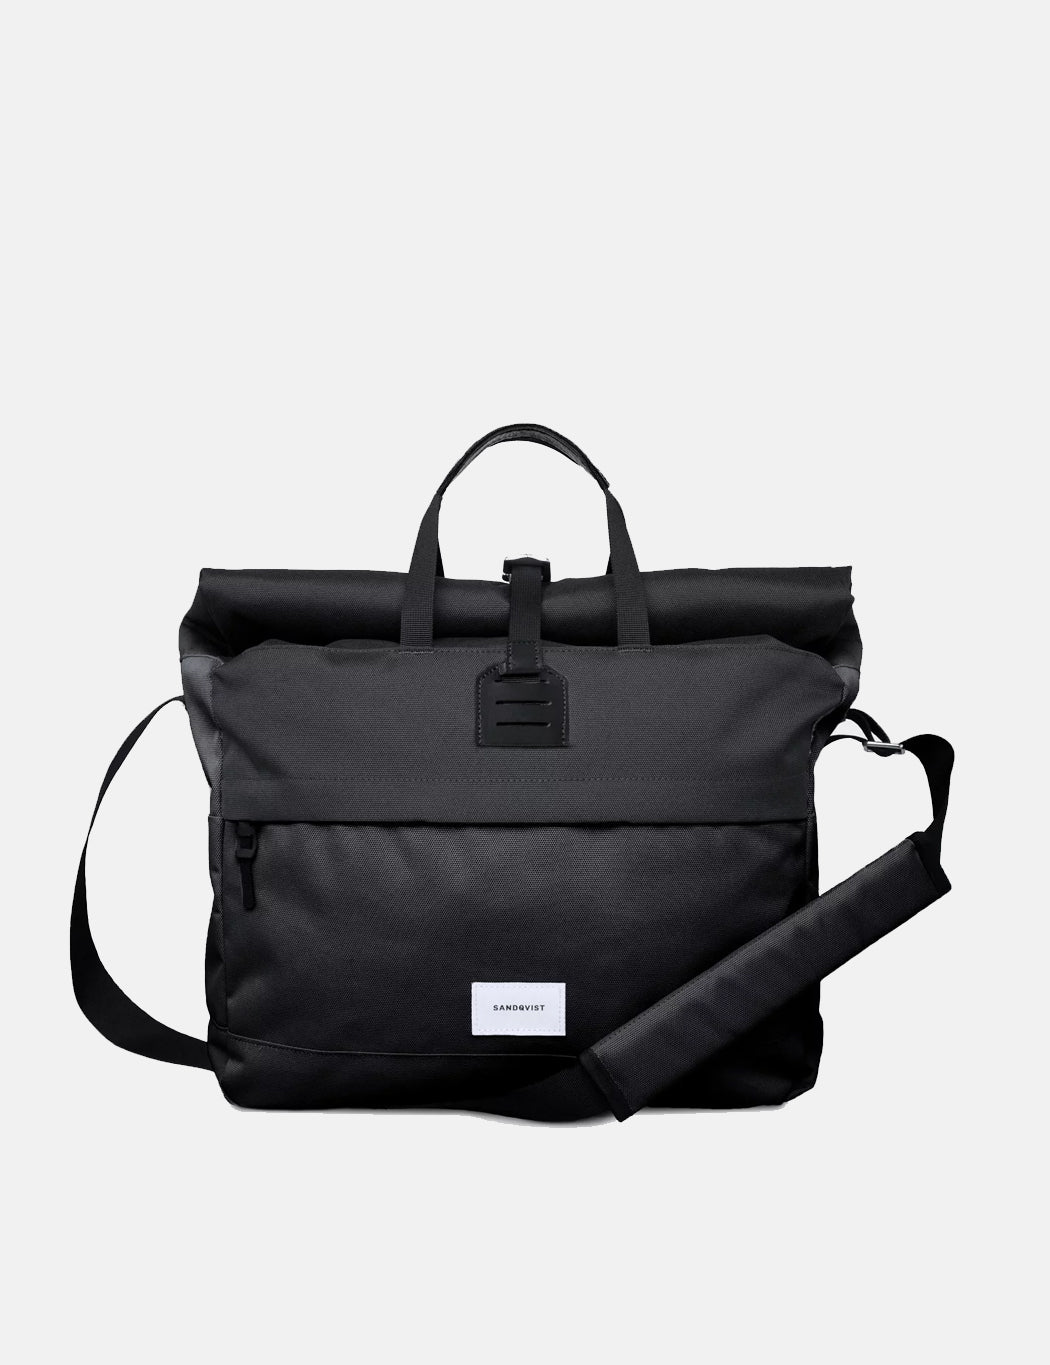 Sandqvist Tor Messenger Bag - Black | URBANEXCESS.